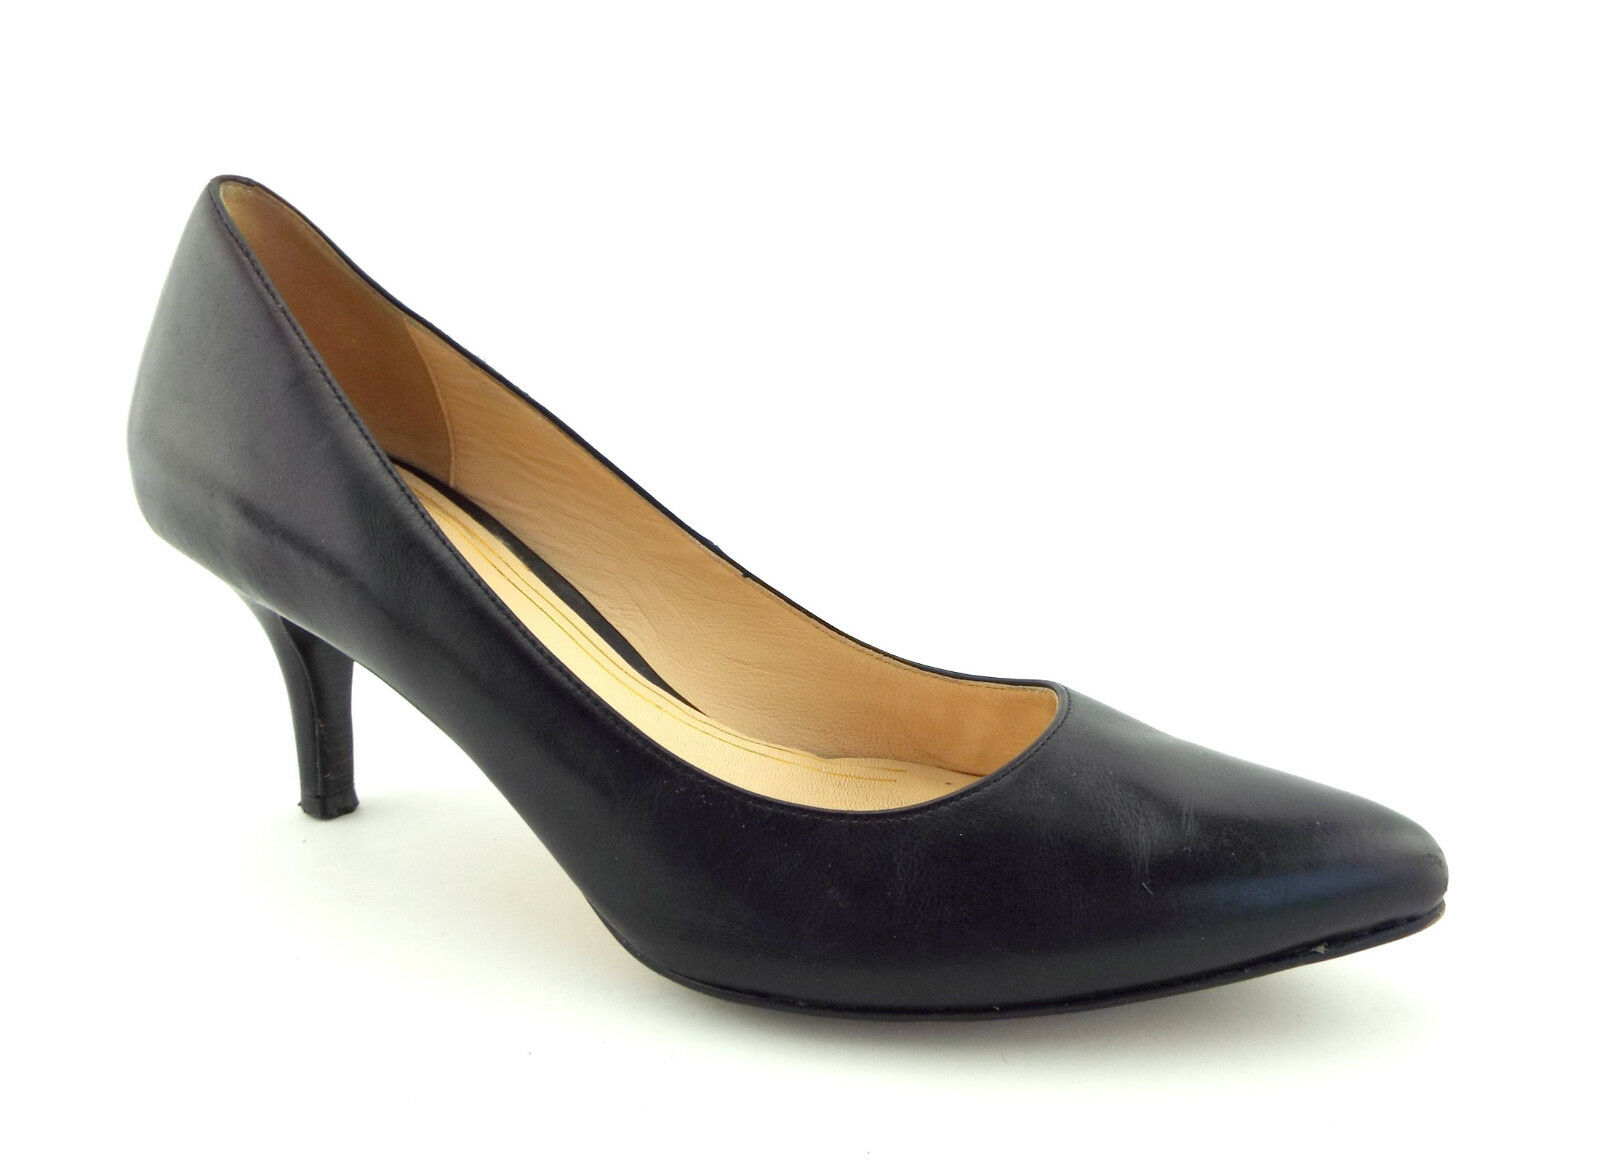 COLE HAAN Size 7.5 Black Leather Heels Pumps Pumps Pumps shoes 7 1 2 ff3394